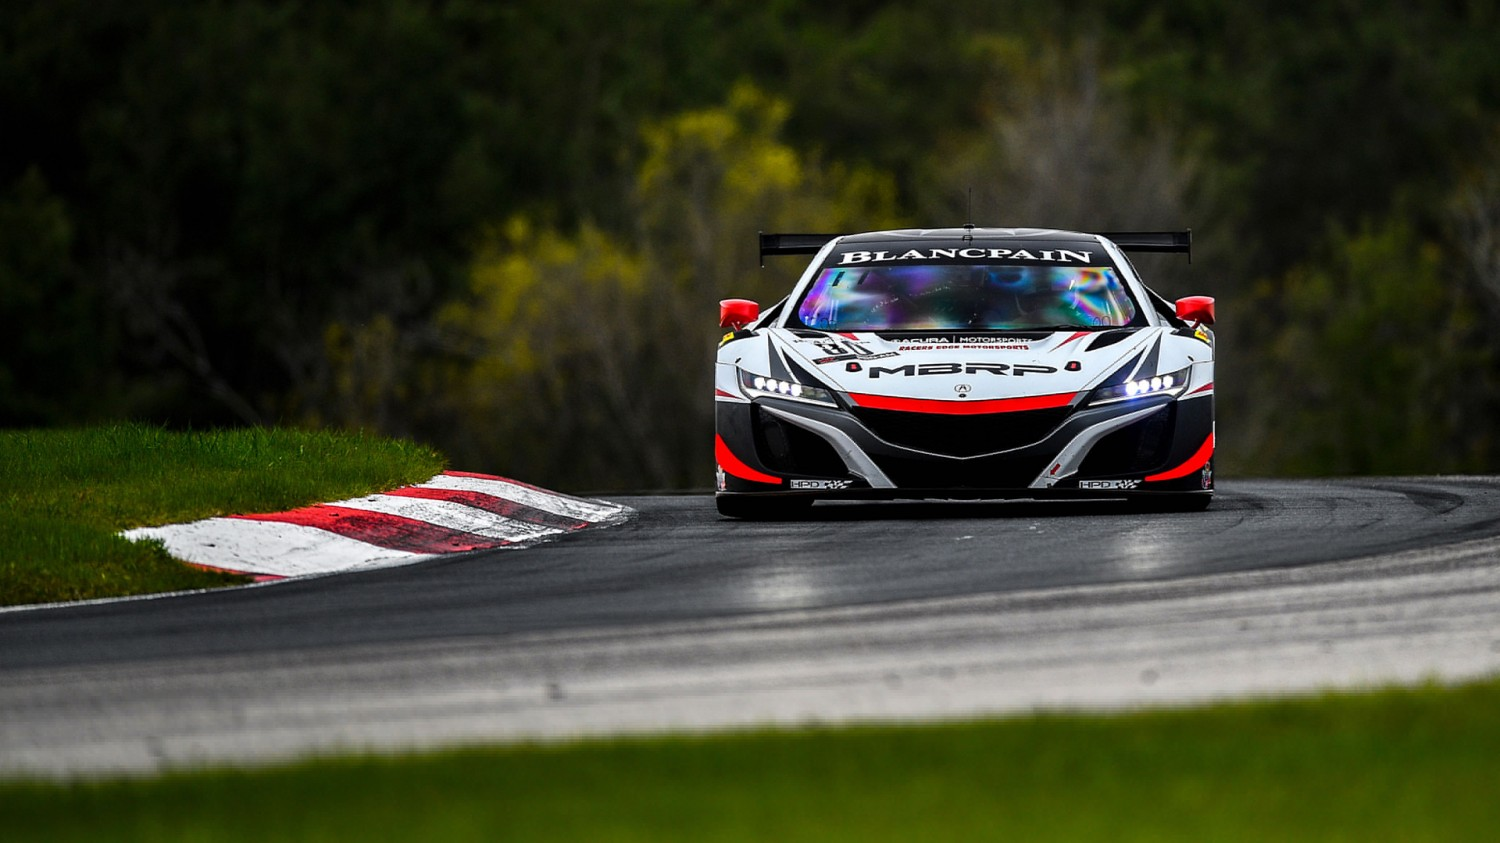 From Canada to California – Blancpain GT World Challenge America Heads to Sonoma Raceway for Rounds 7 and 8